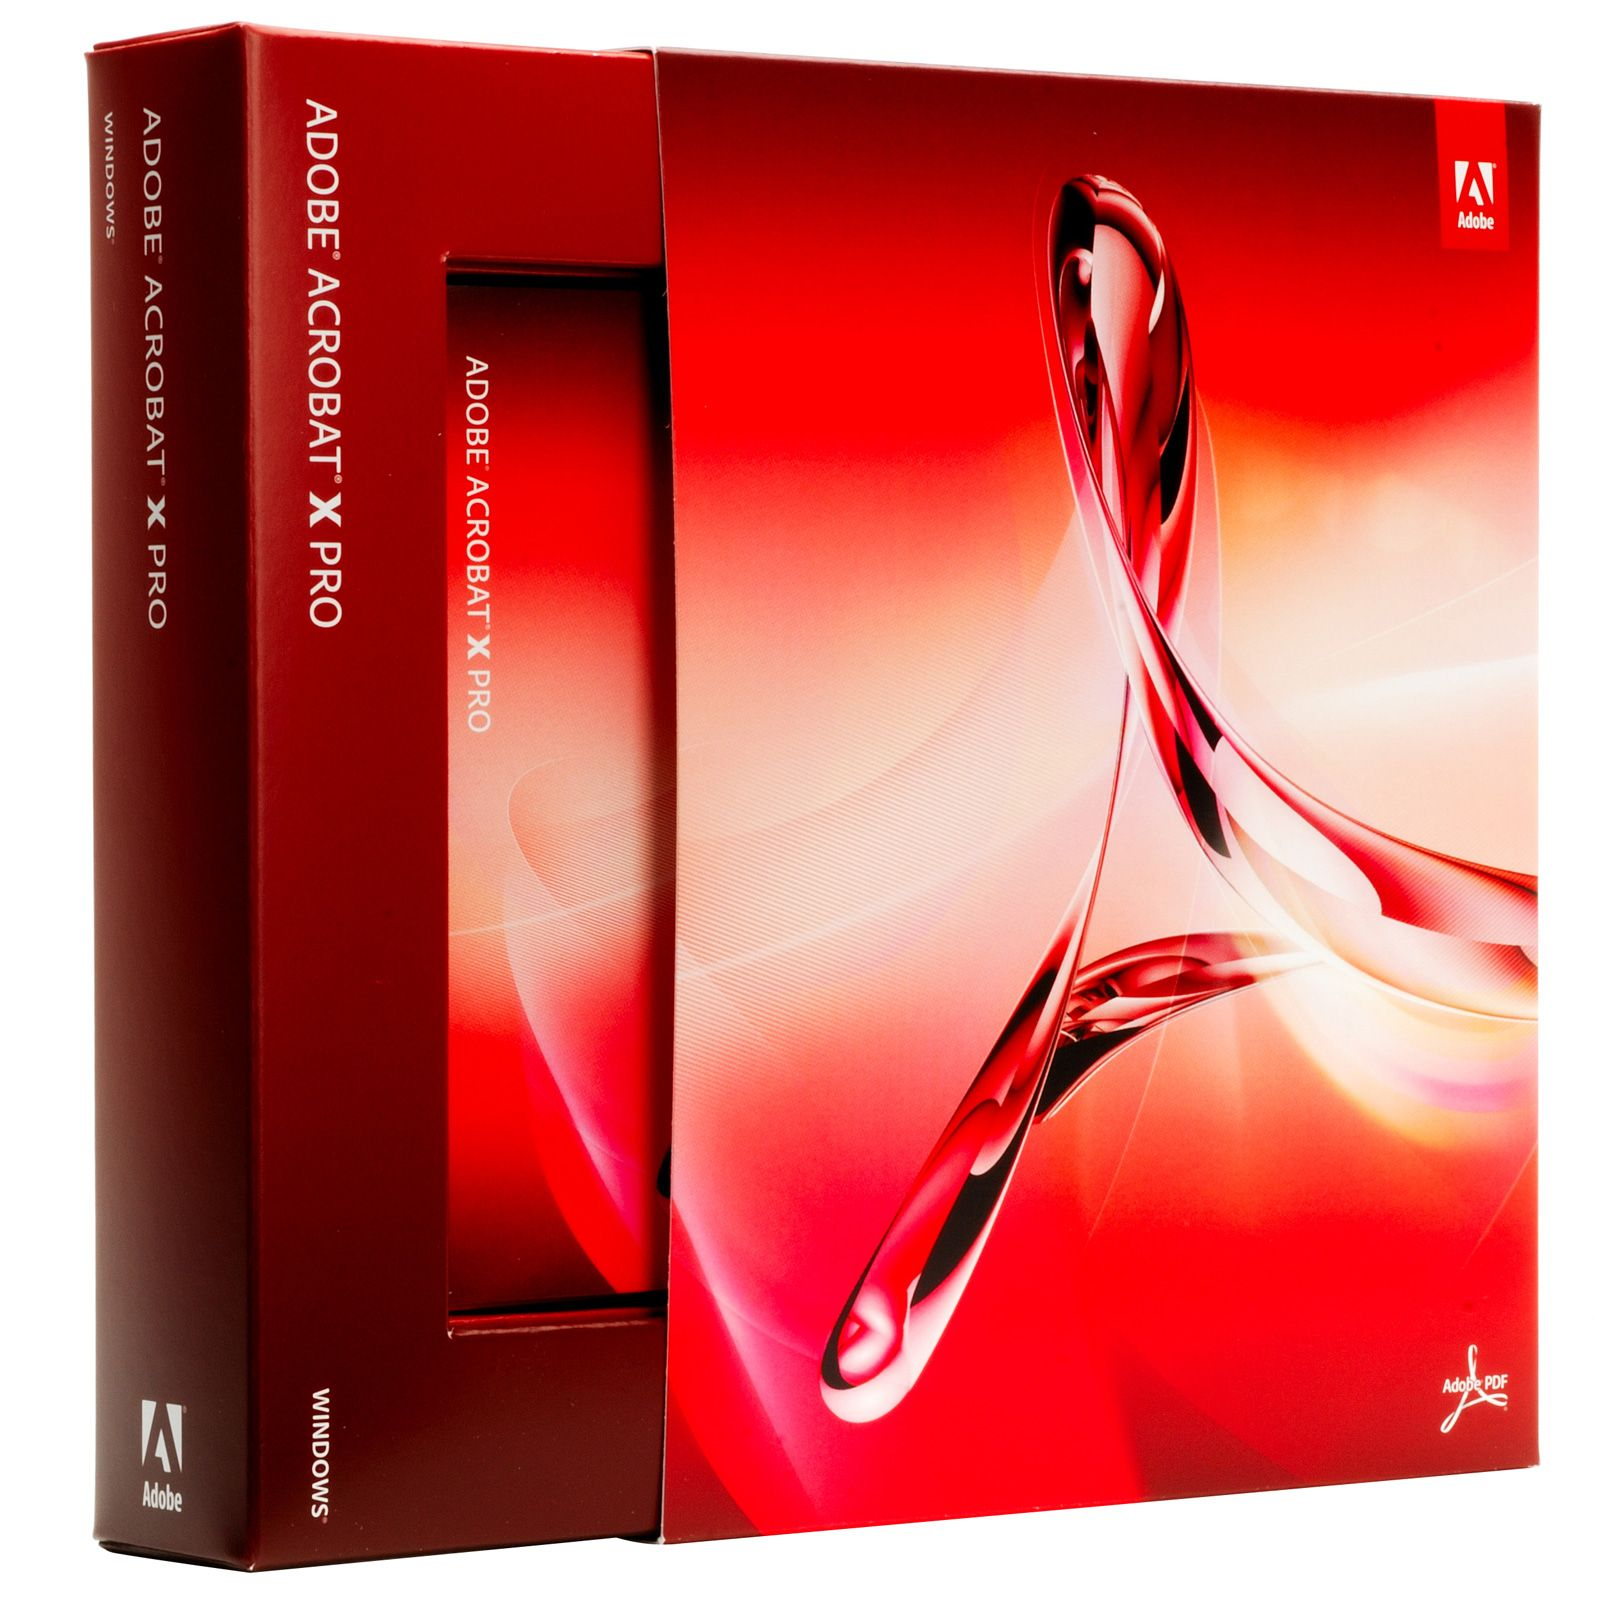 Adobe Acrobat XI Pro Crack Plus Serial Number Full Free Download